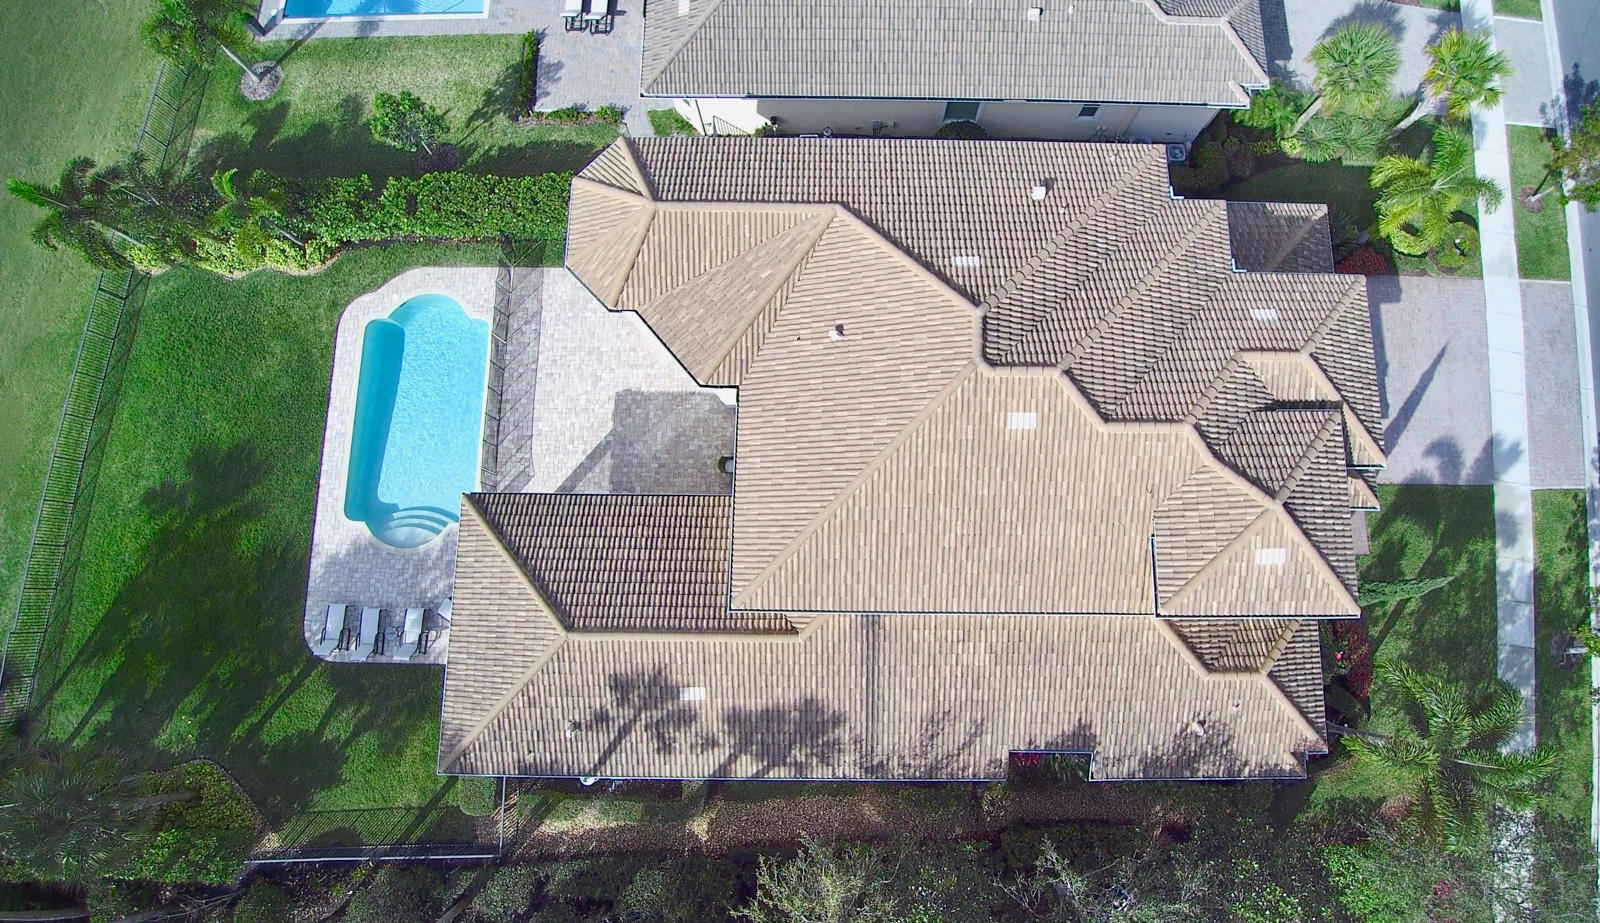 102 Carmela Court, Jupiter, Florida 33478, 4 Bedrooms Bedrooms, ,4.1 BathroomsBathrooms,A,Single family,Carmela,RX-10507144